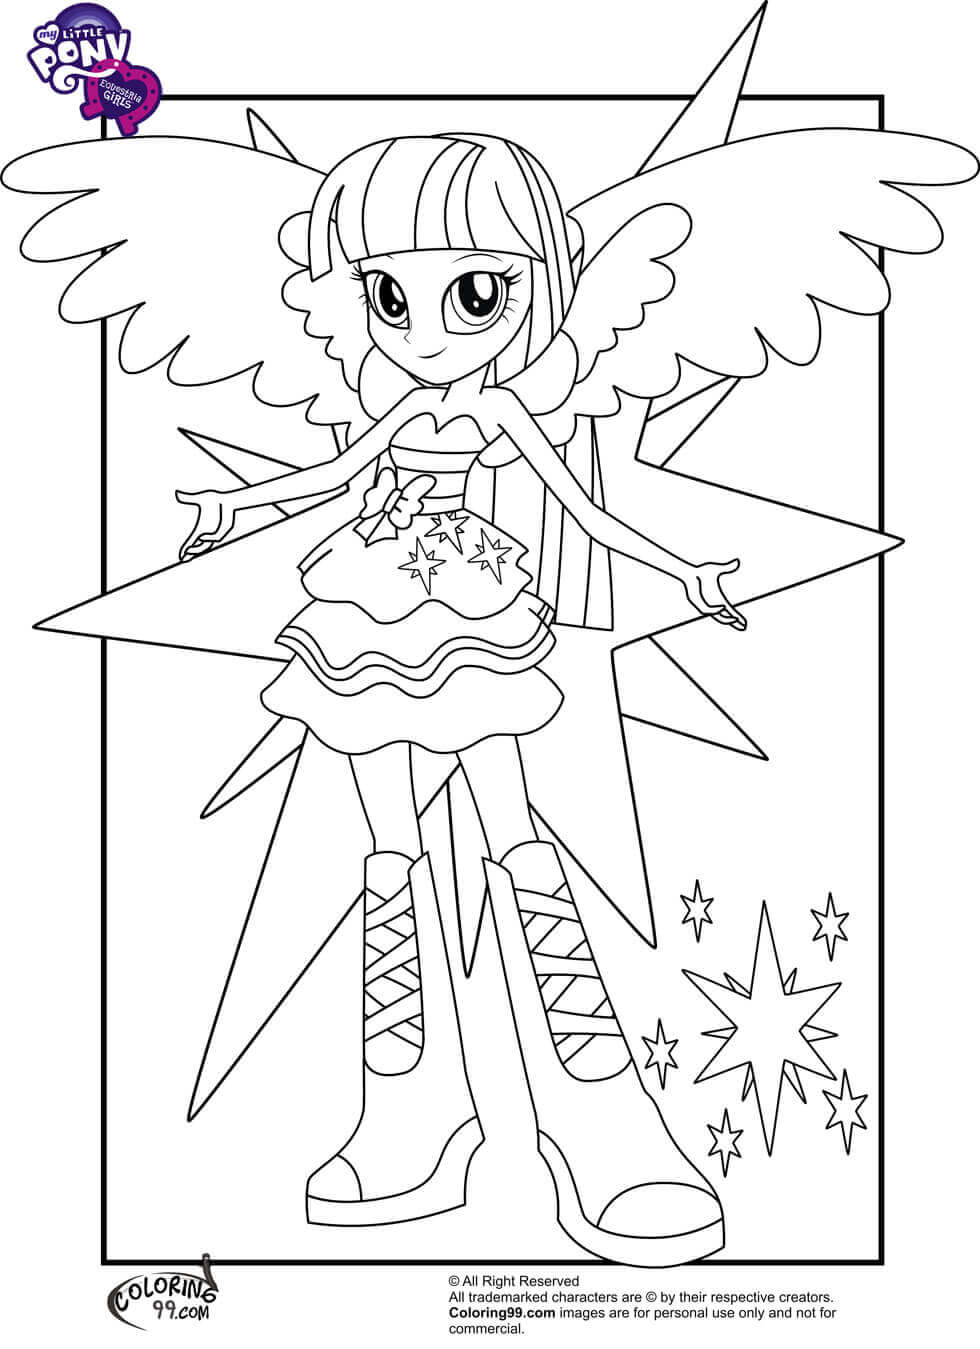 mlp coloring my little pony coloring pages coloring pages for kids coloring mlp